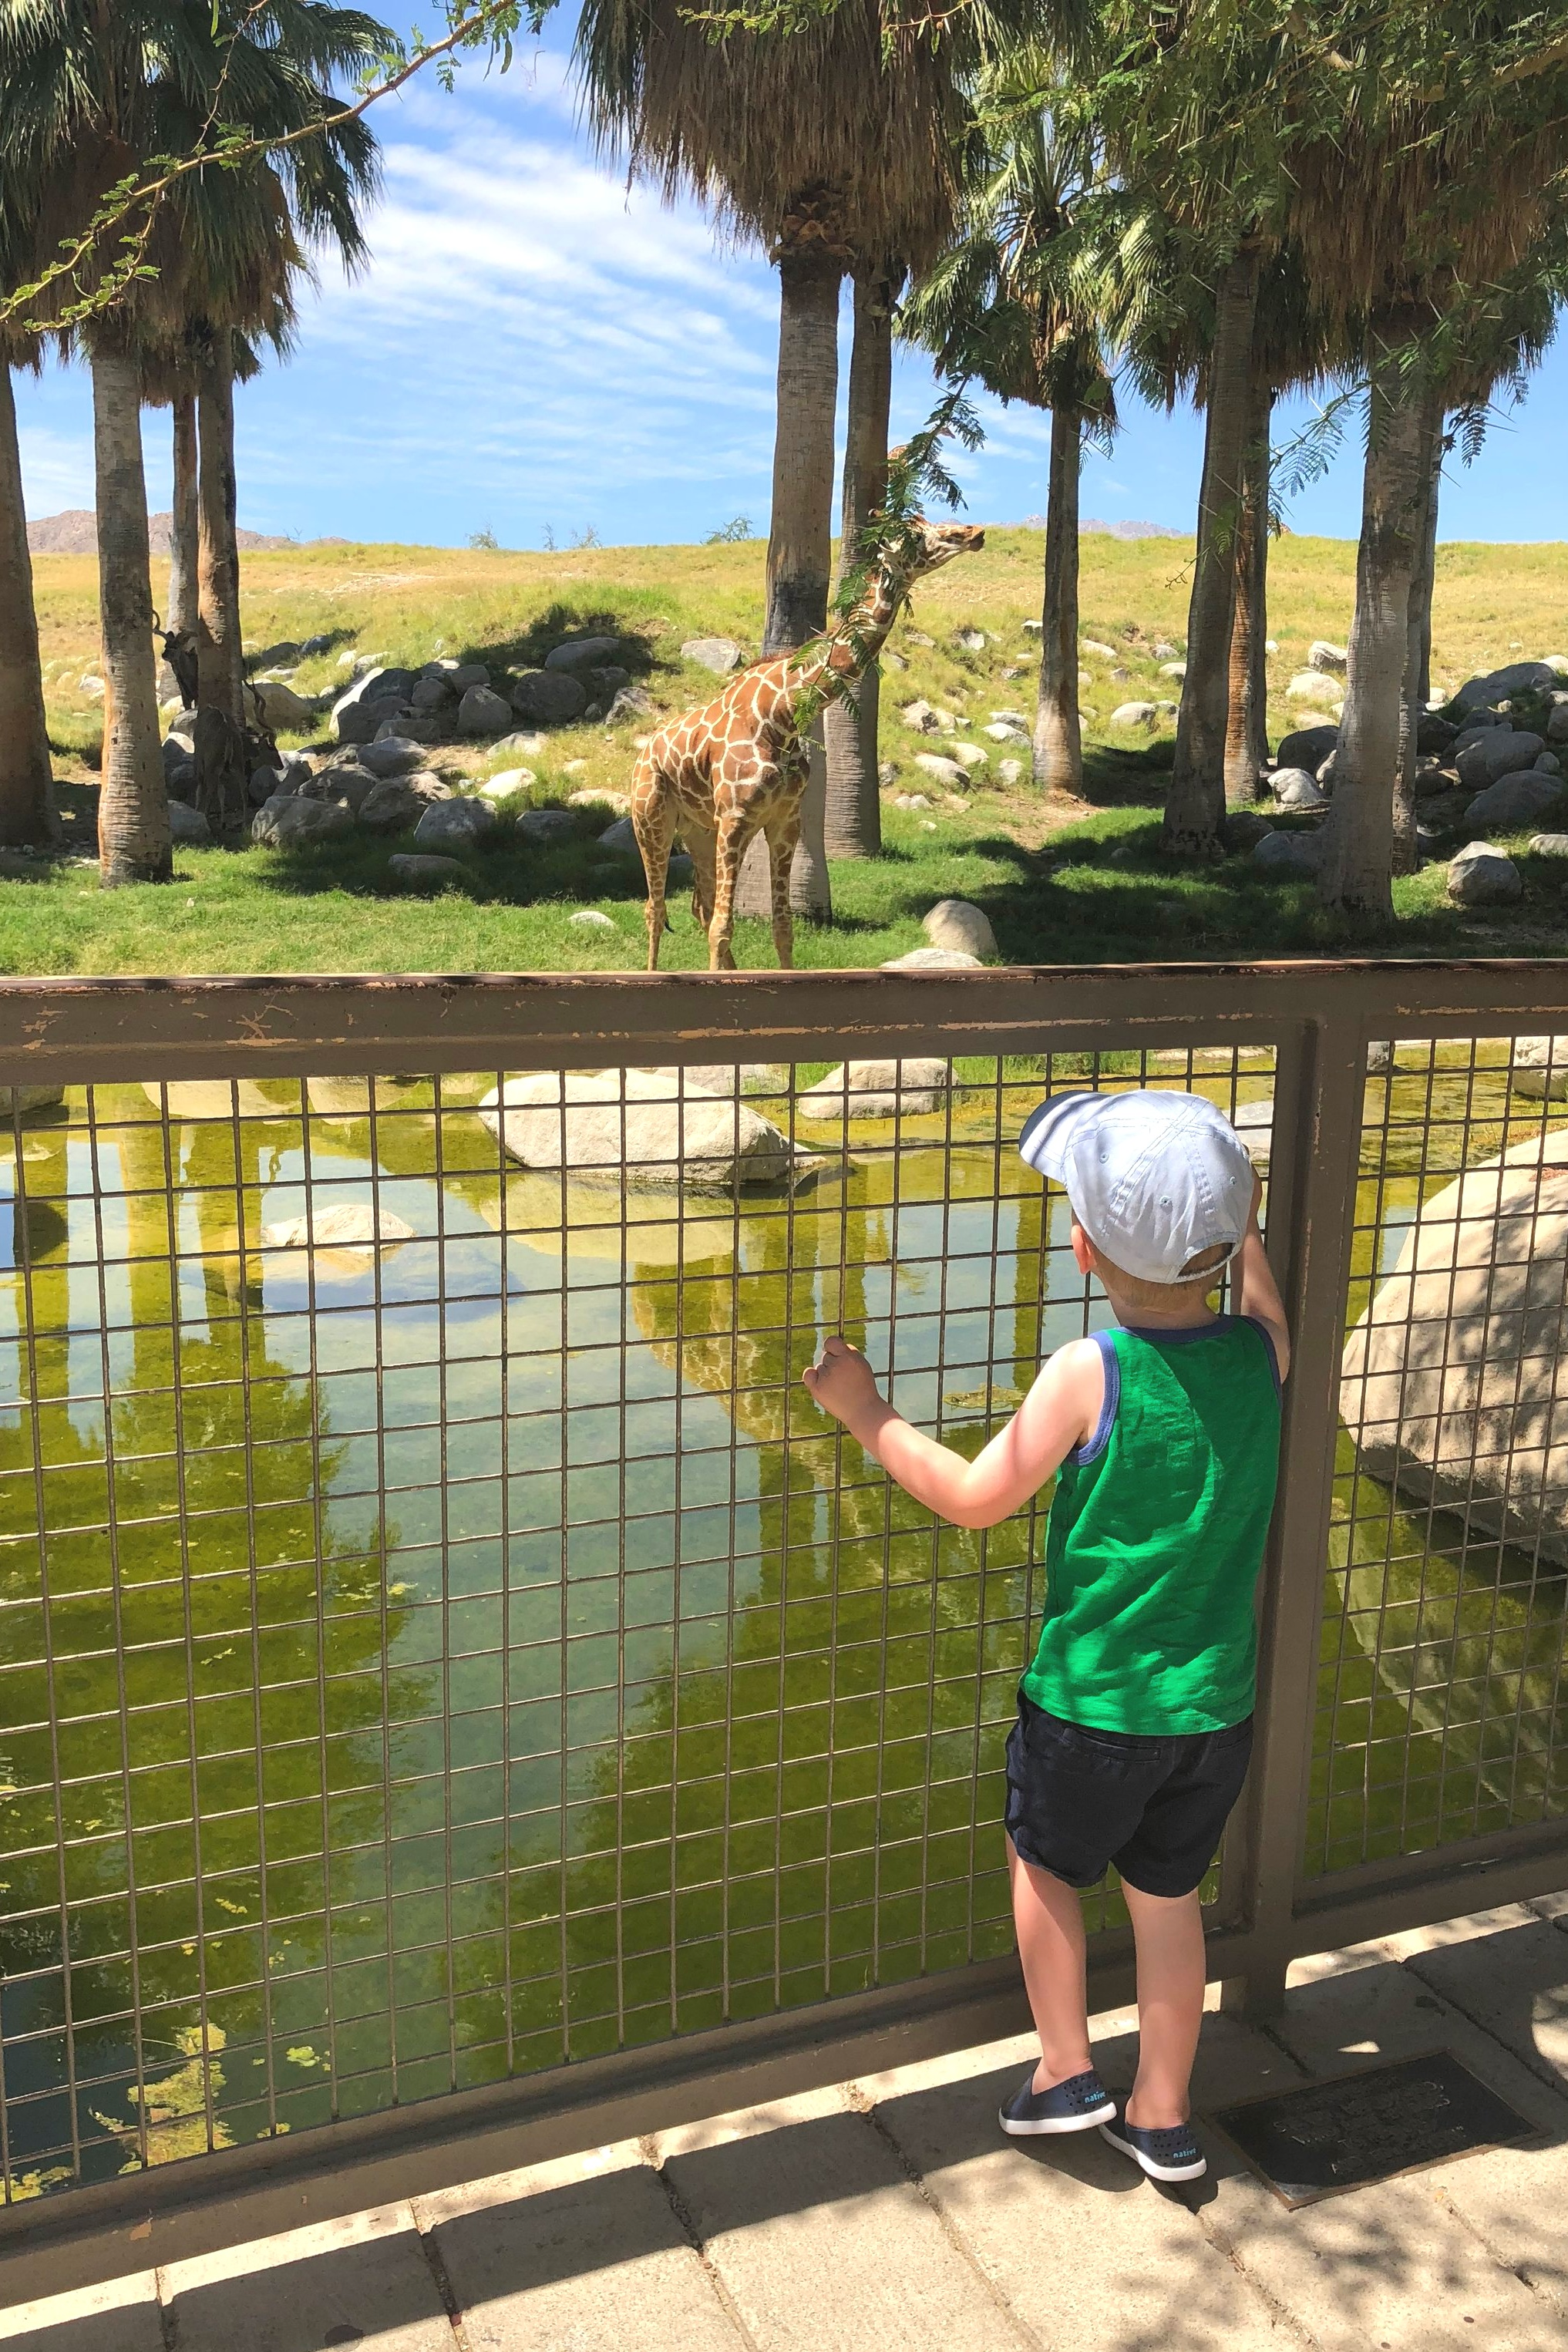 Our sons loved the Living Desert Zoo and Gardens.